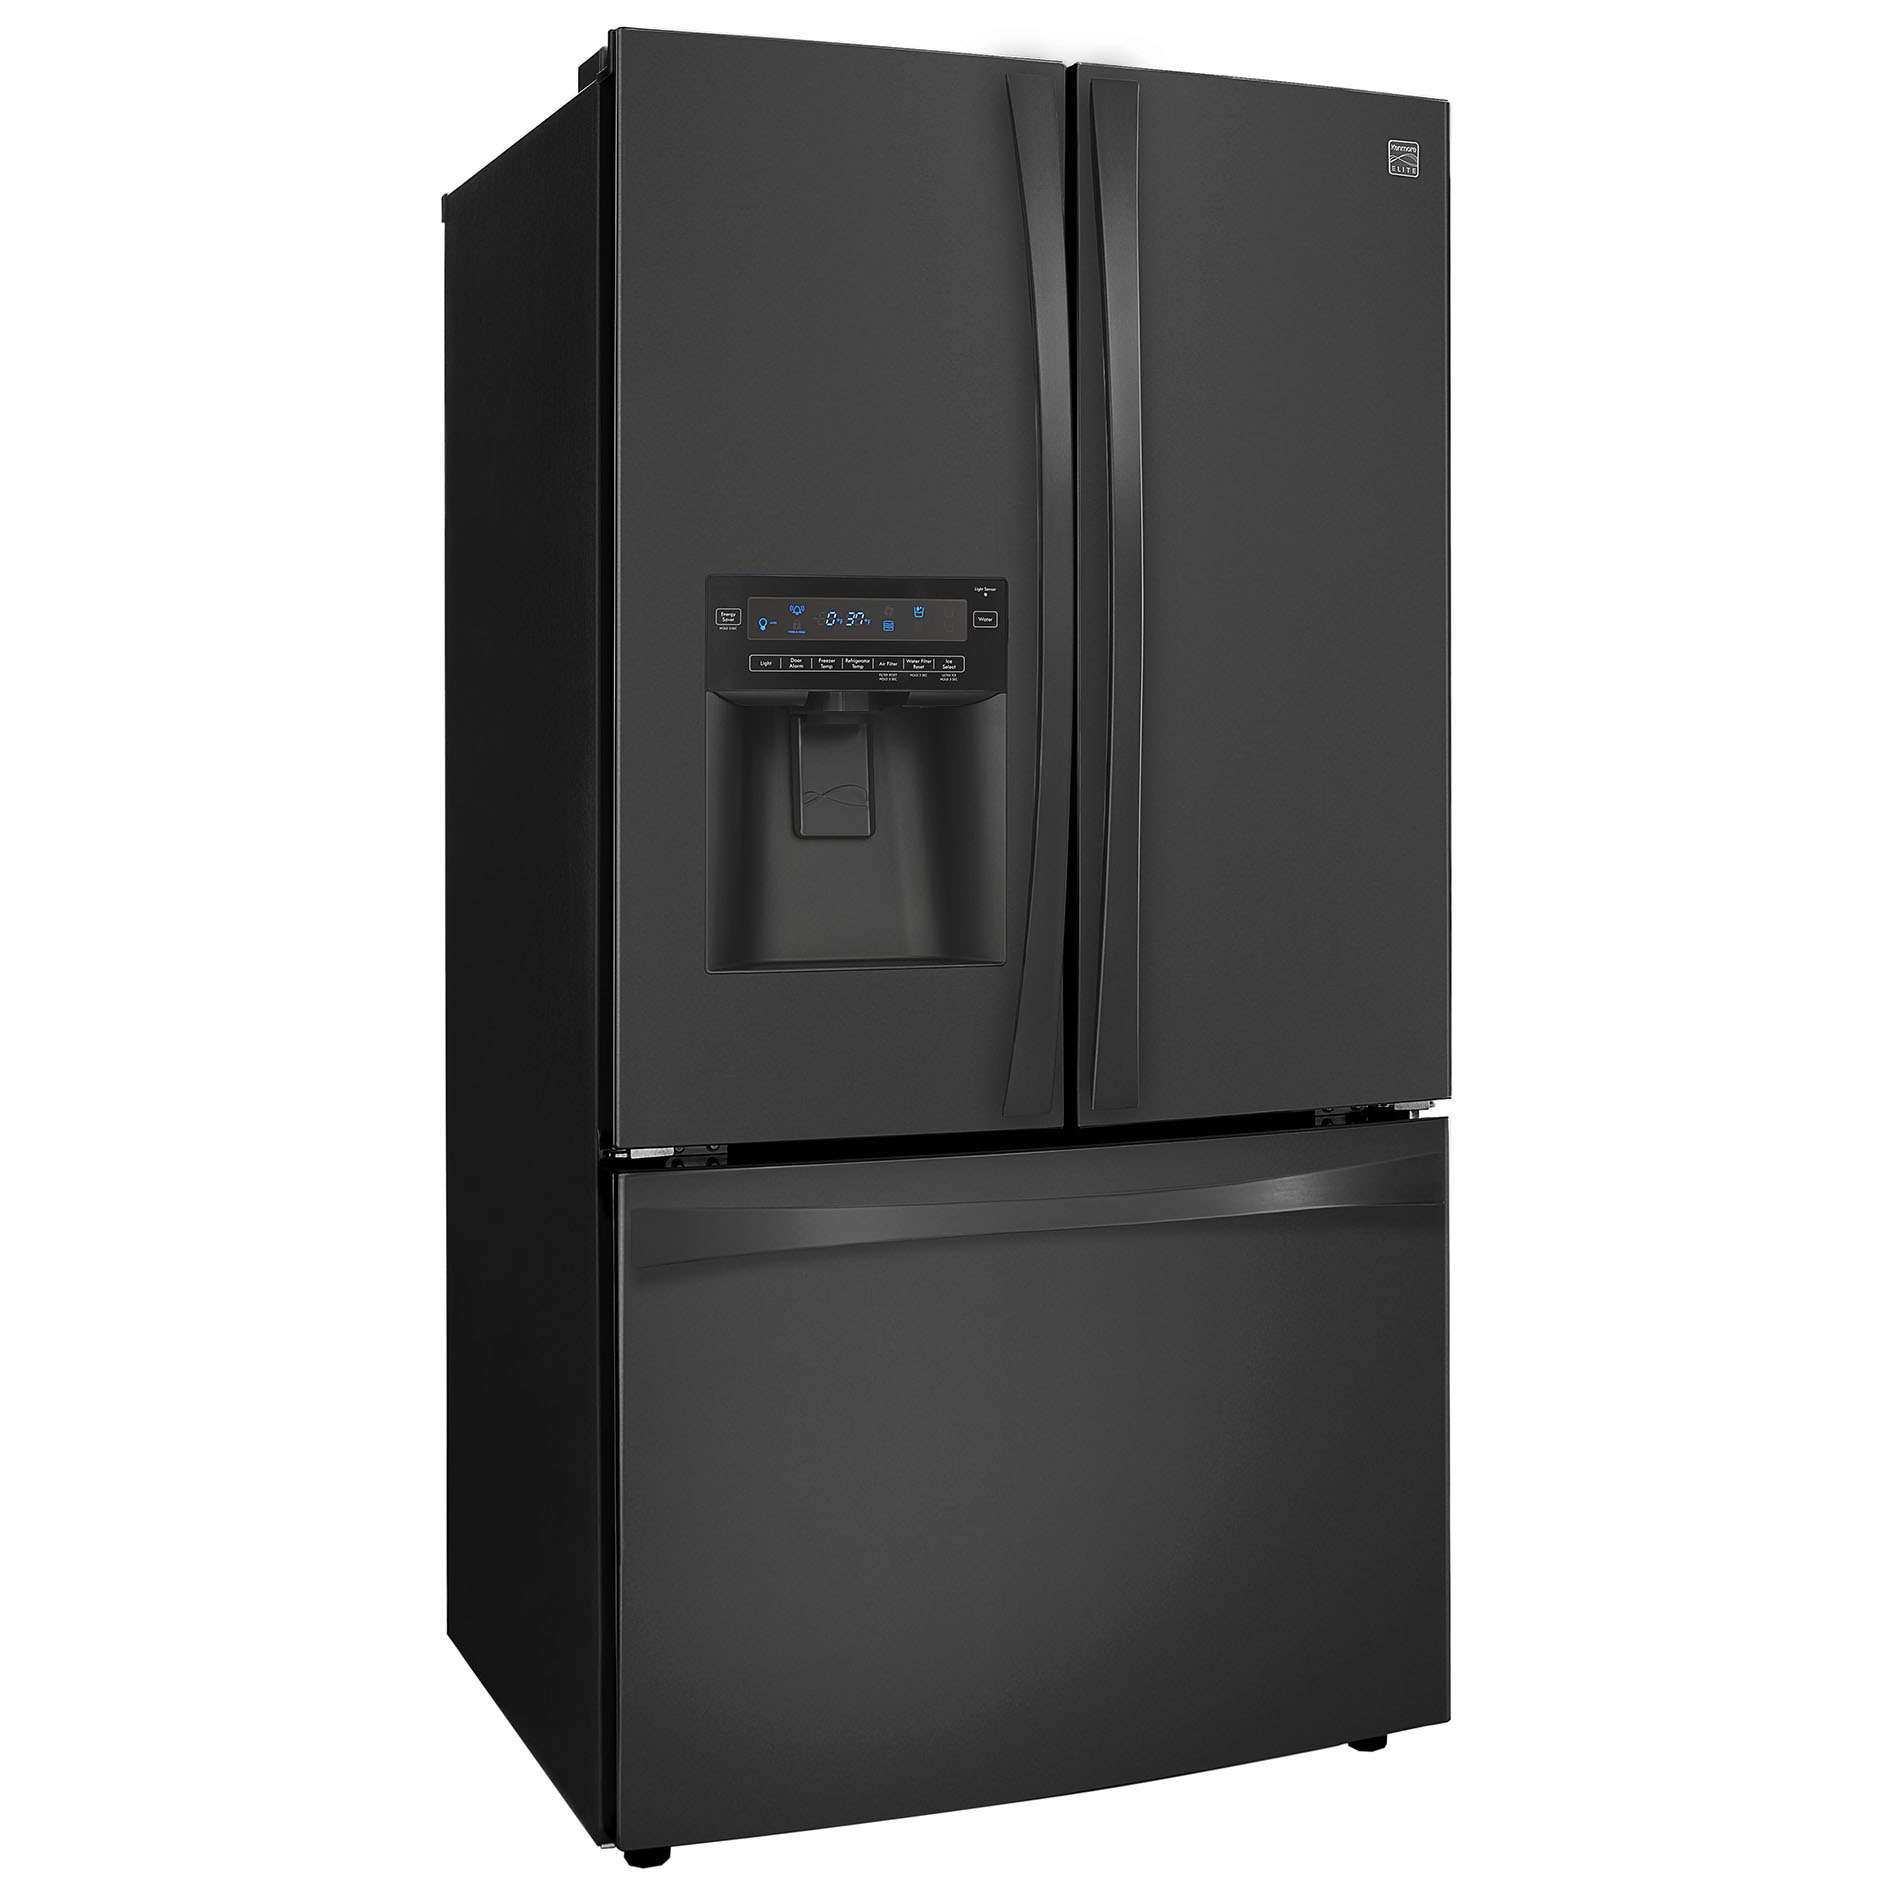 Kenmore Elite 33 cu. ft. French Door Bottom-Freezer Refrigerator - Black